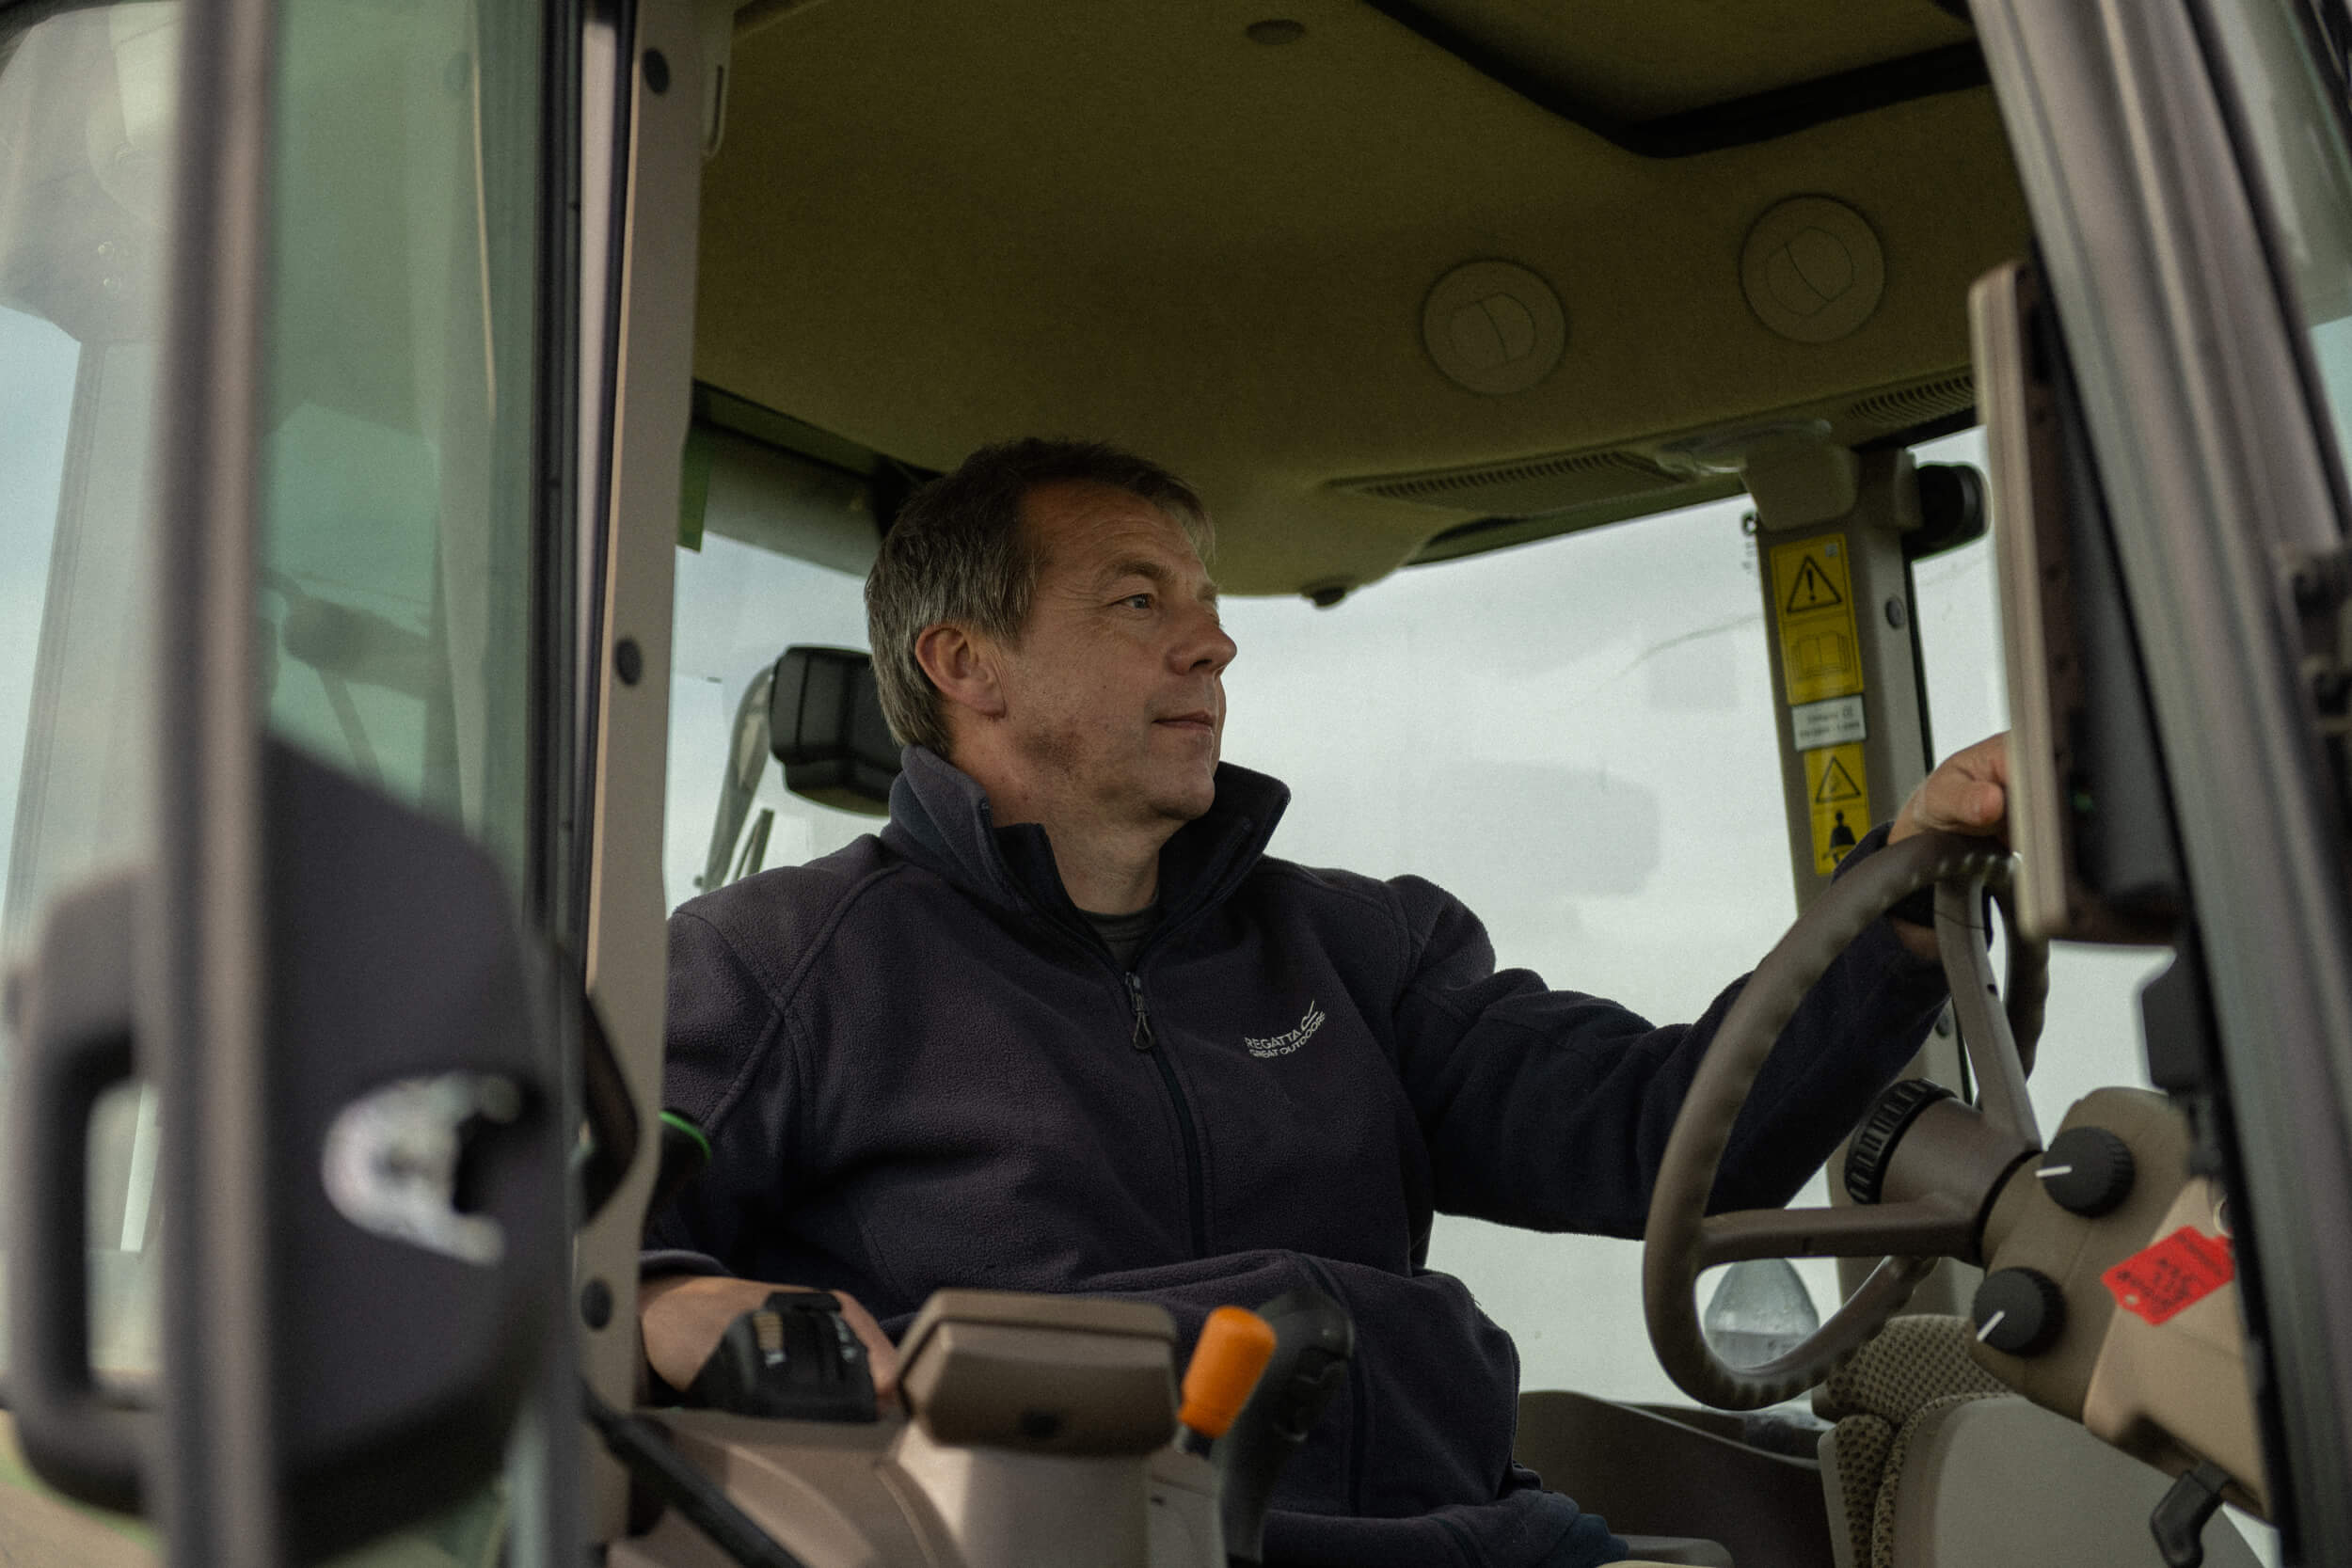 Andrew Jempson driving a tractor